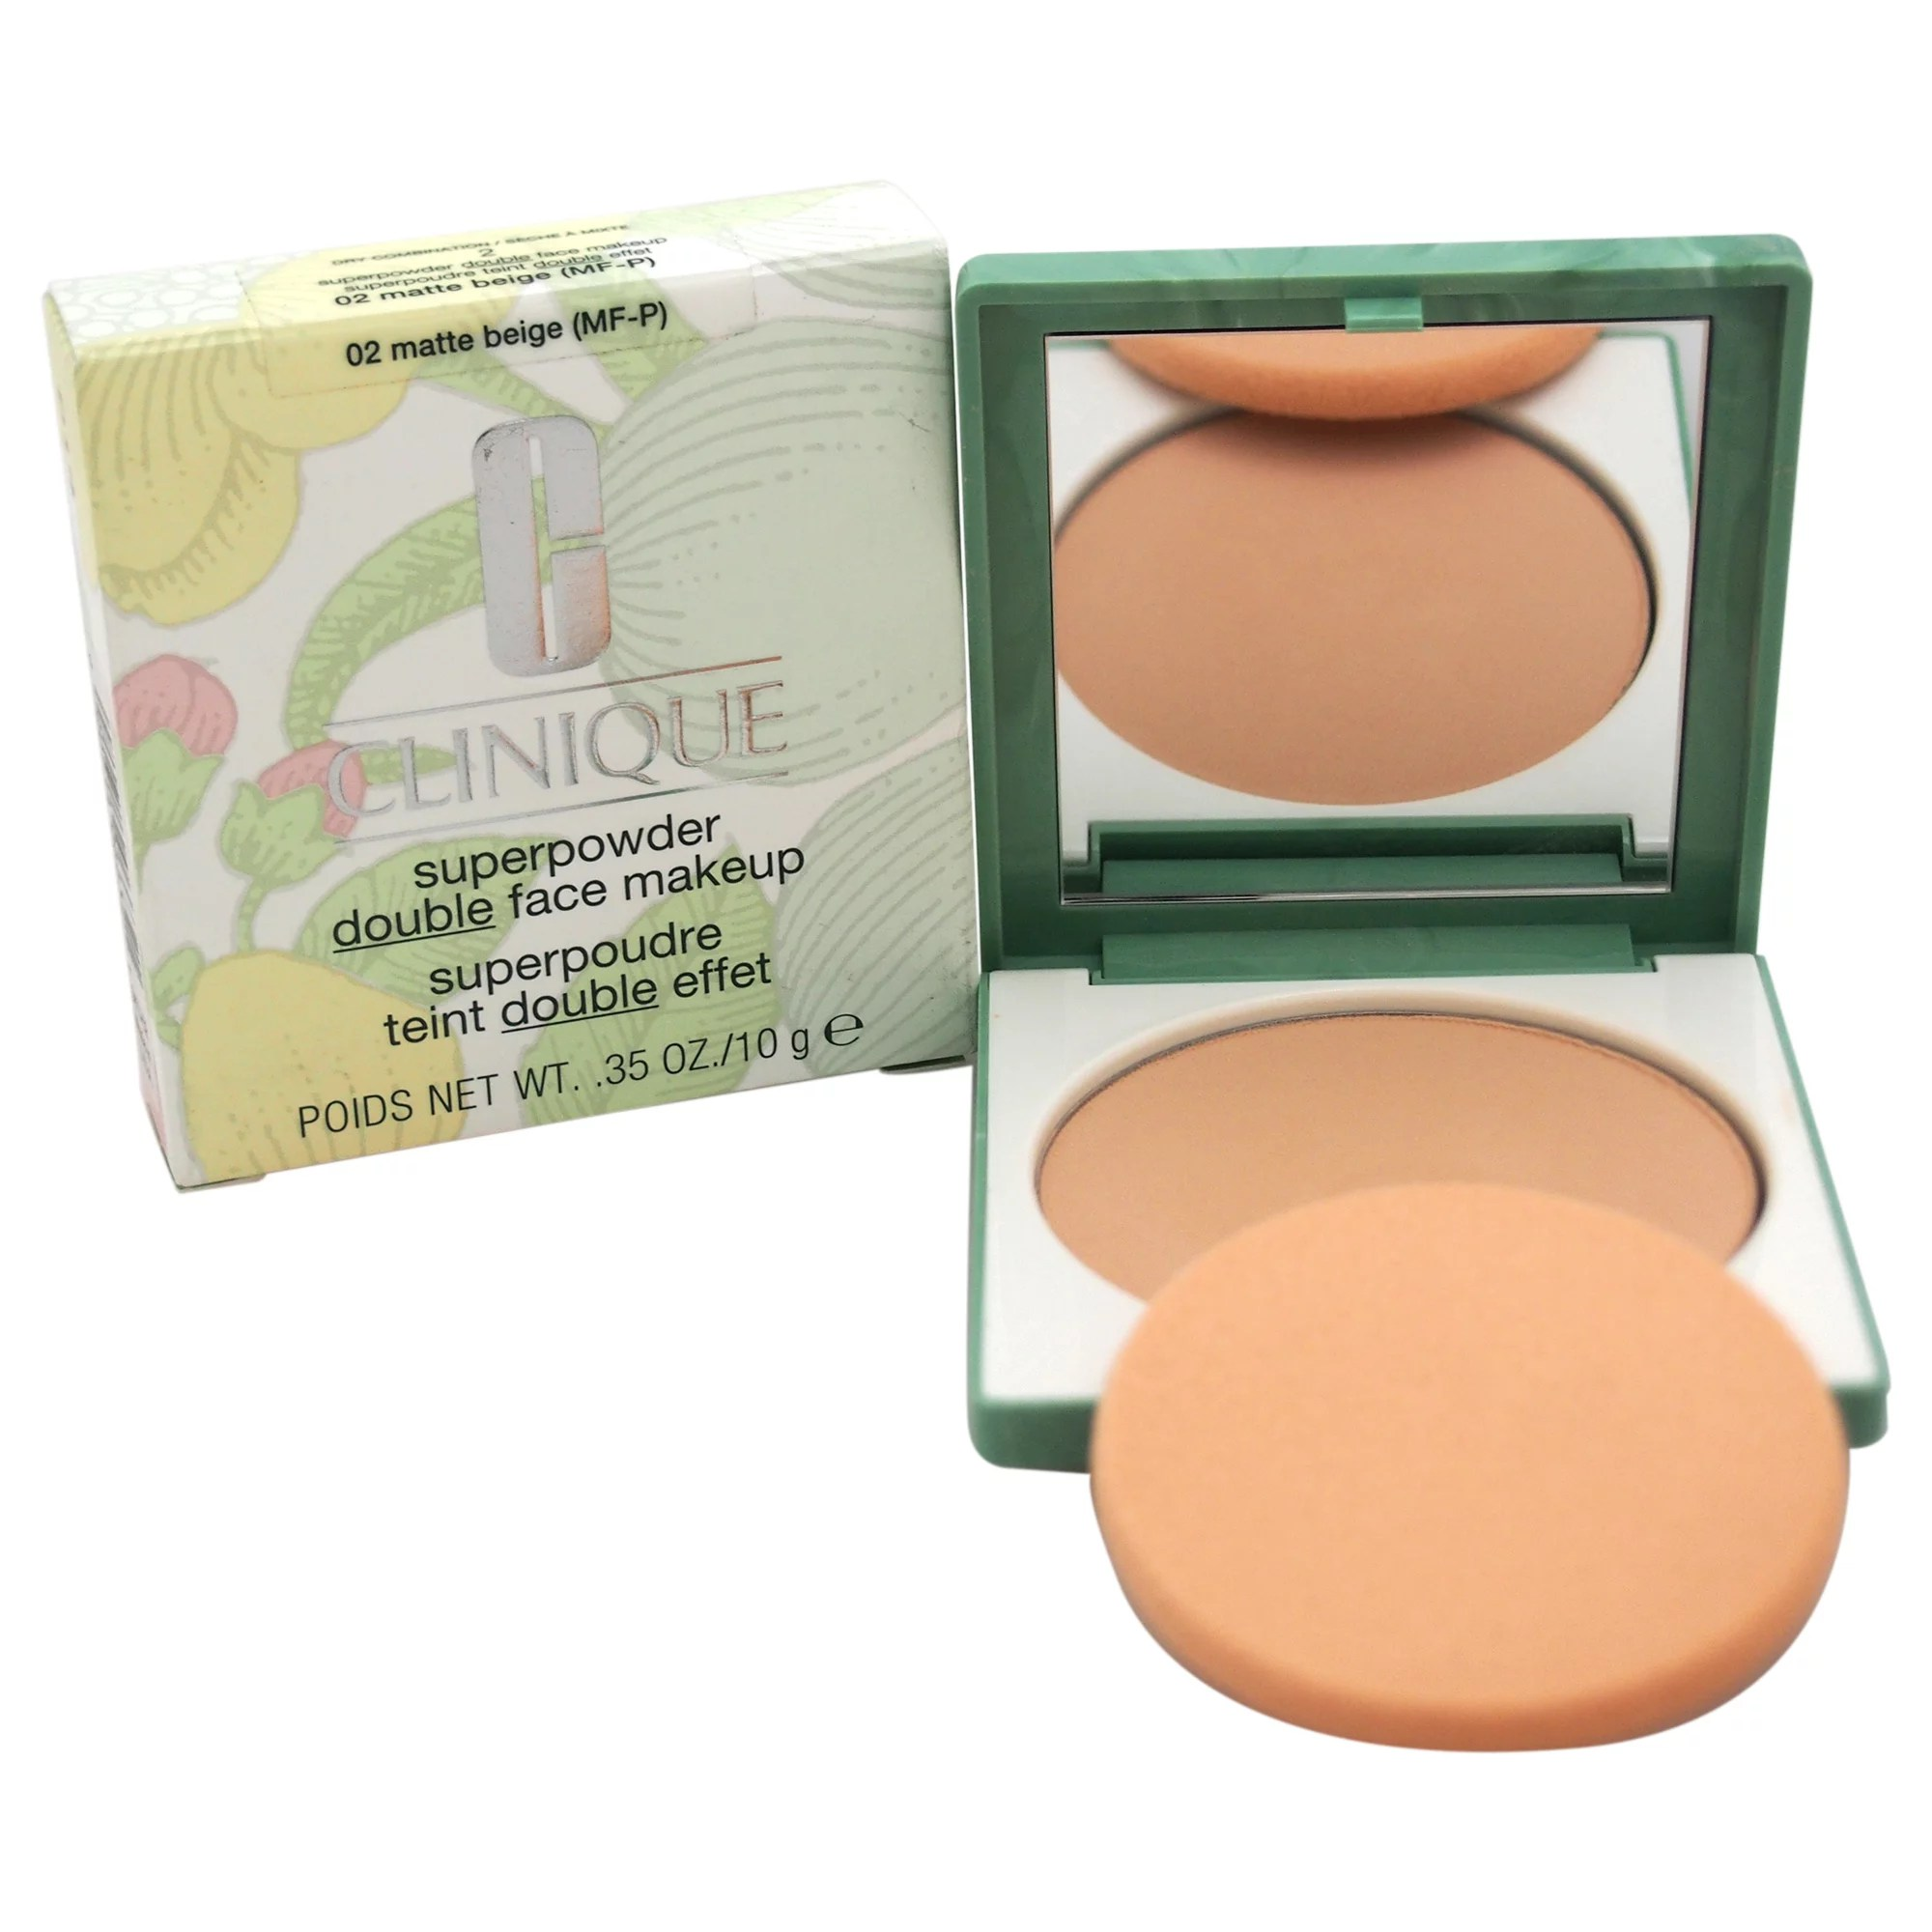 Superpowder Double Face Makeup – # 02 Matte Beige (MF-P)-Dry Combination by Clinique for Women – 0.3